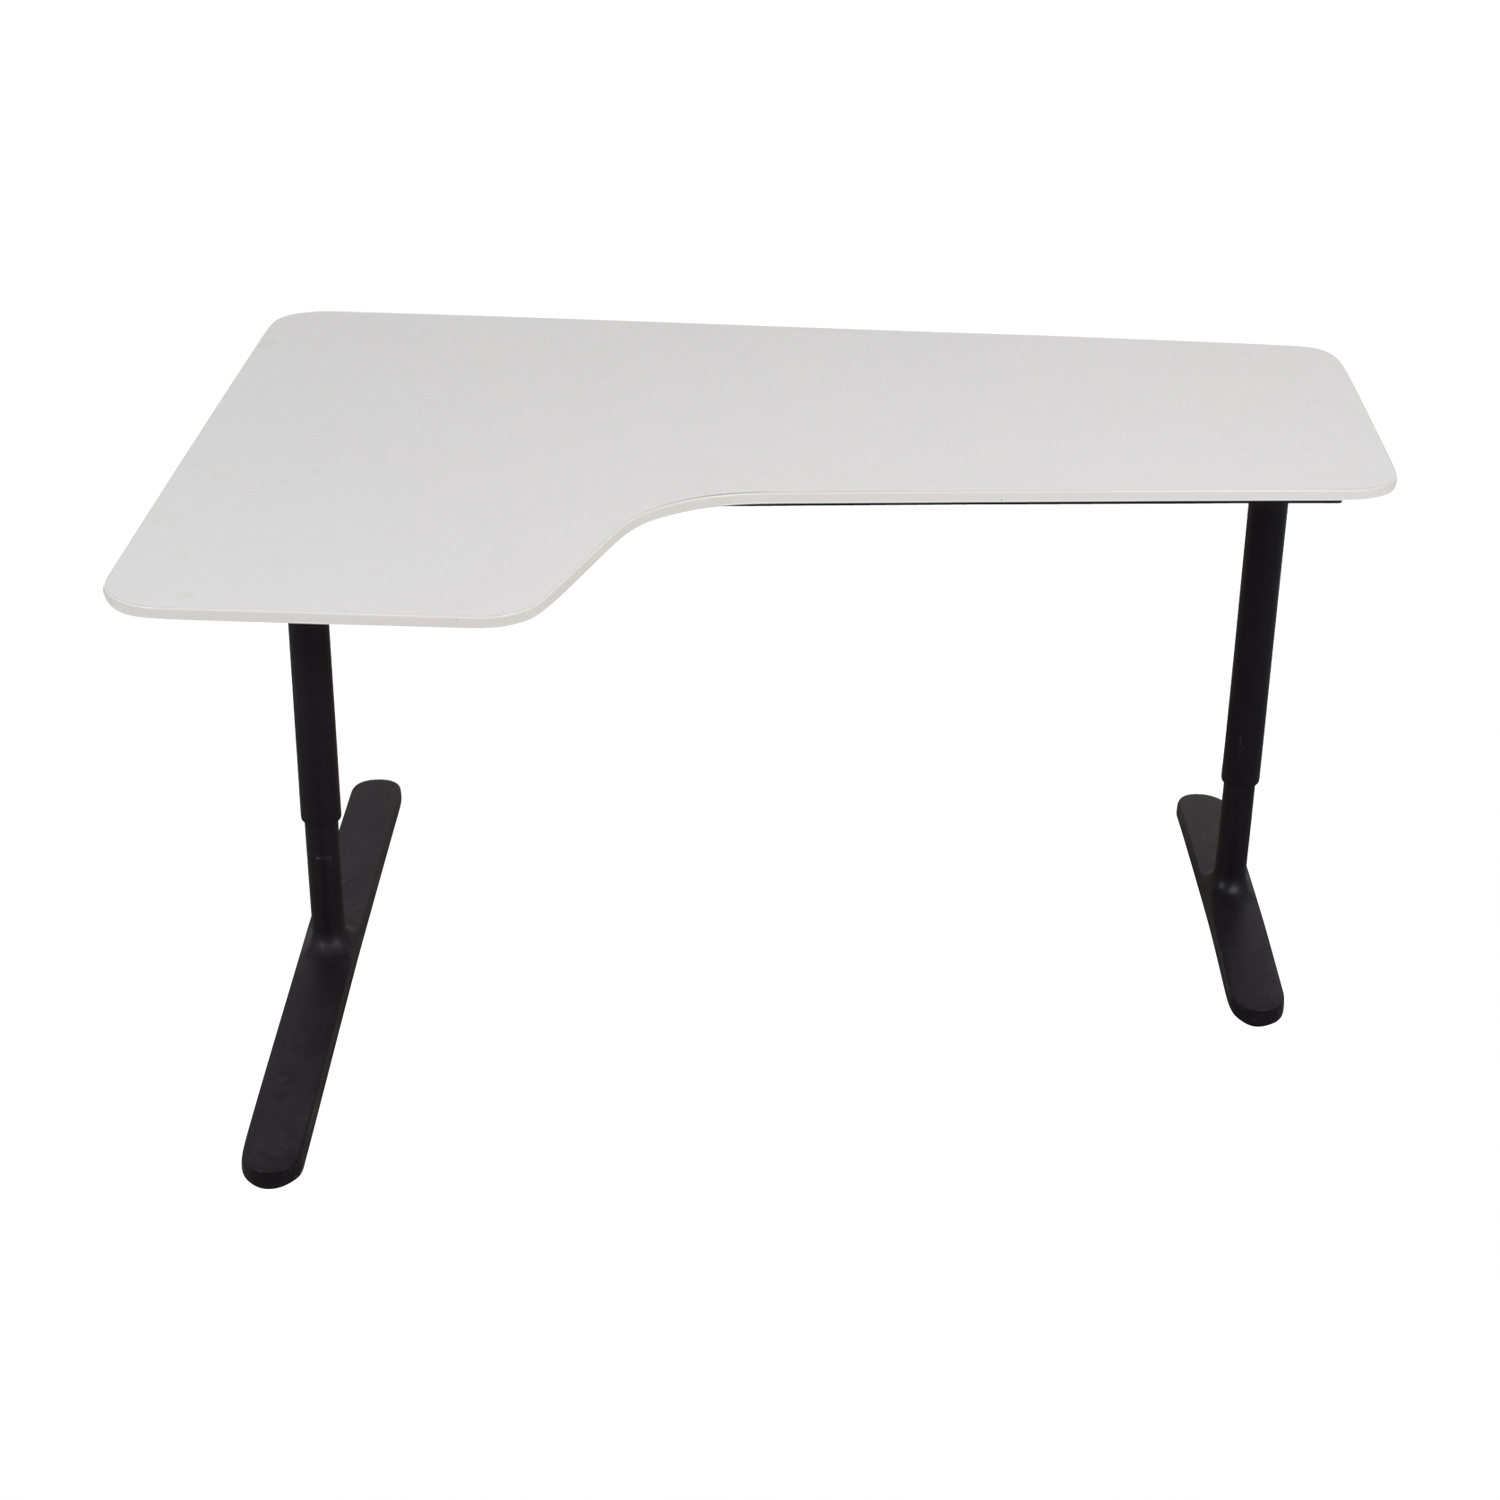 off ikea bekant white left corner desk tables used accent table sectional patio furniture waterproof garden covers propane fire pit cast aluminum end bath and beyond salt lamp